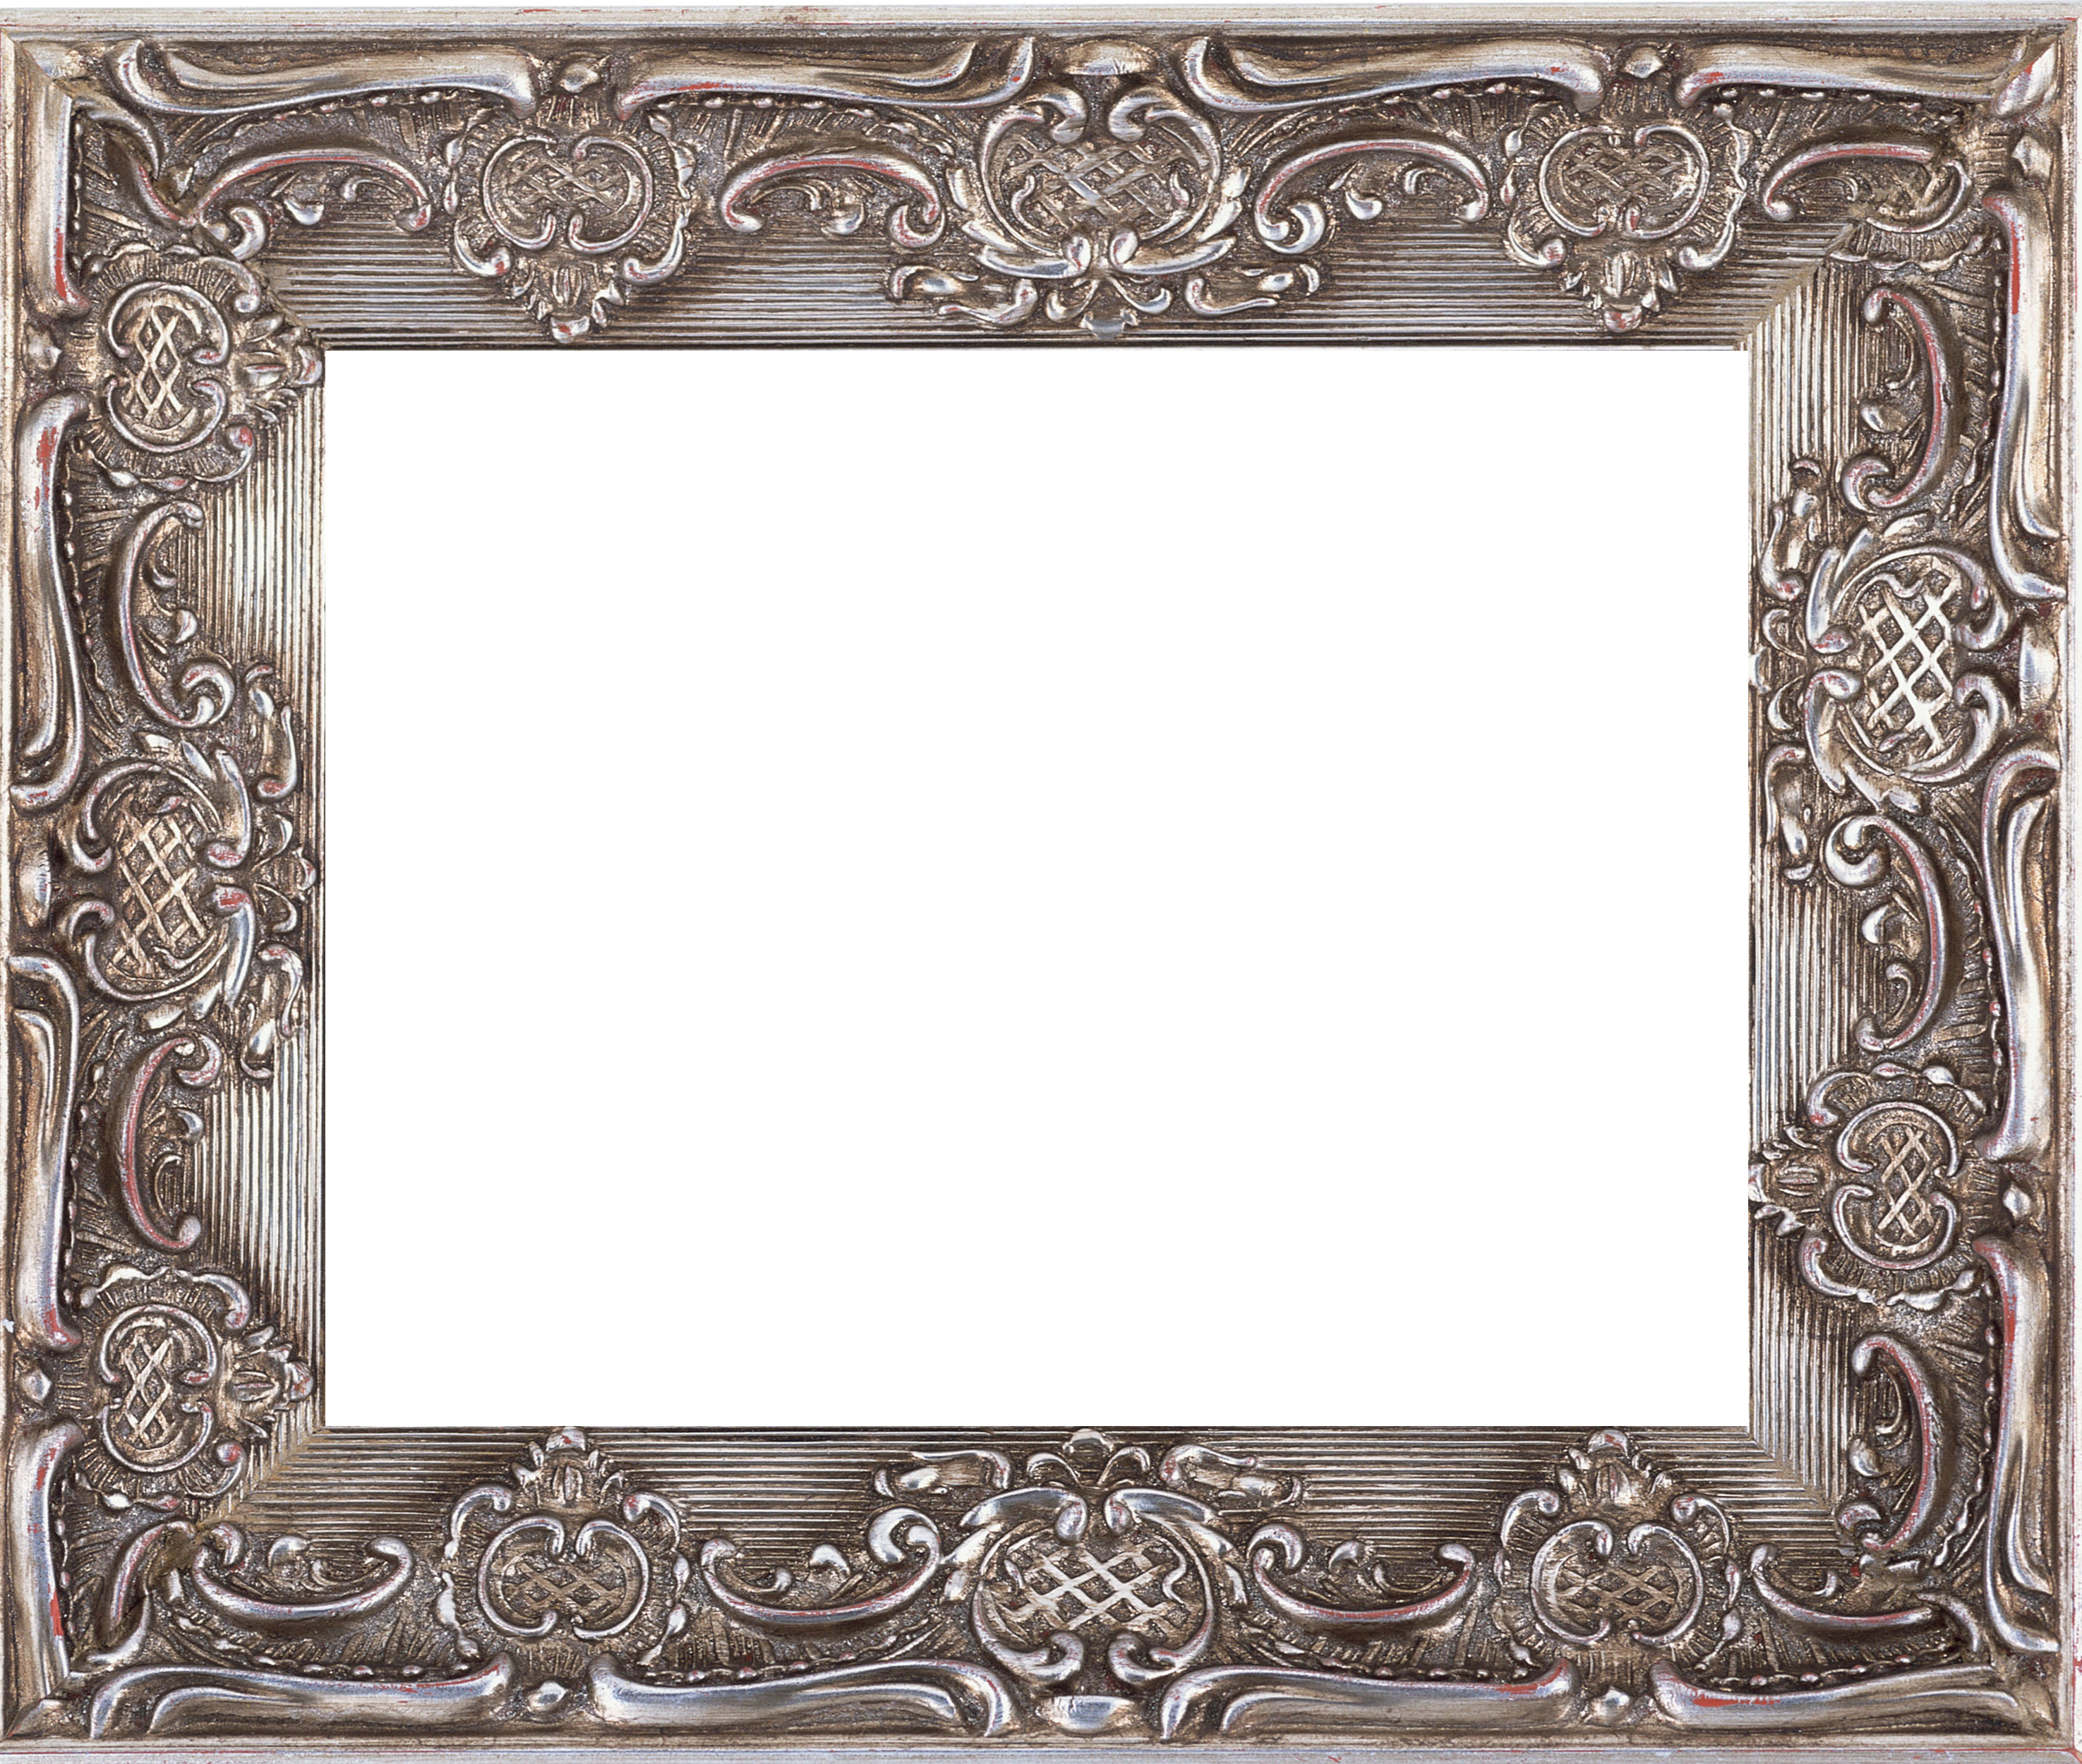 Frame within Frame _2 | Instant Photo Magnets